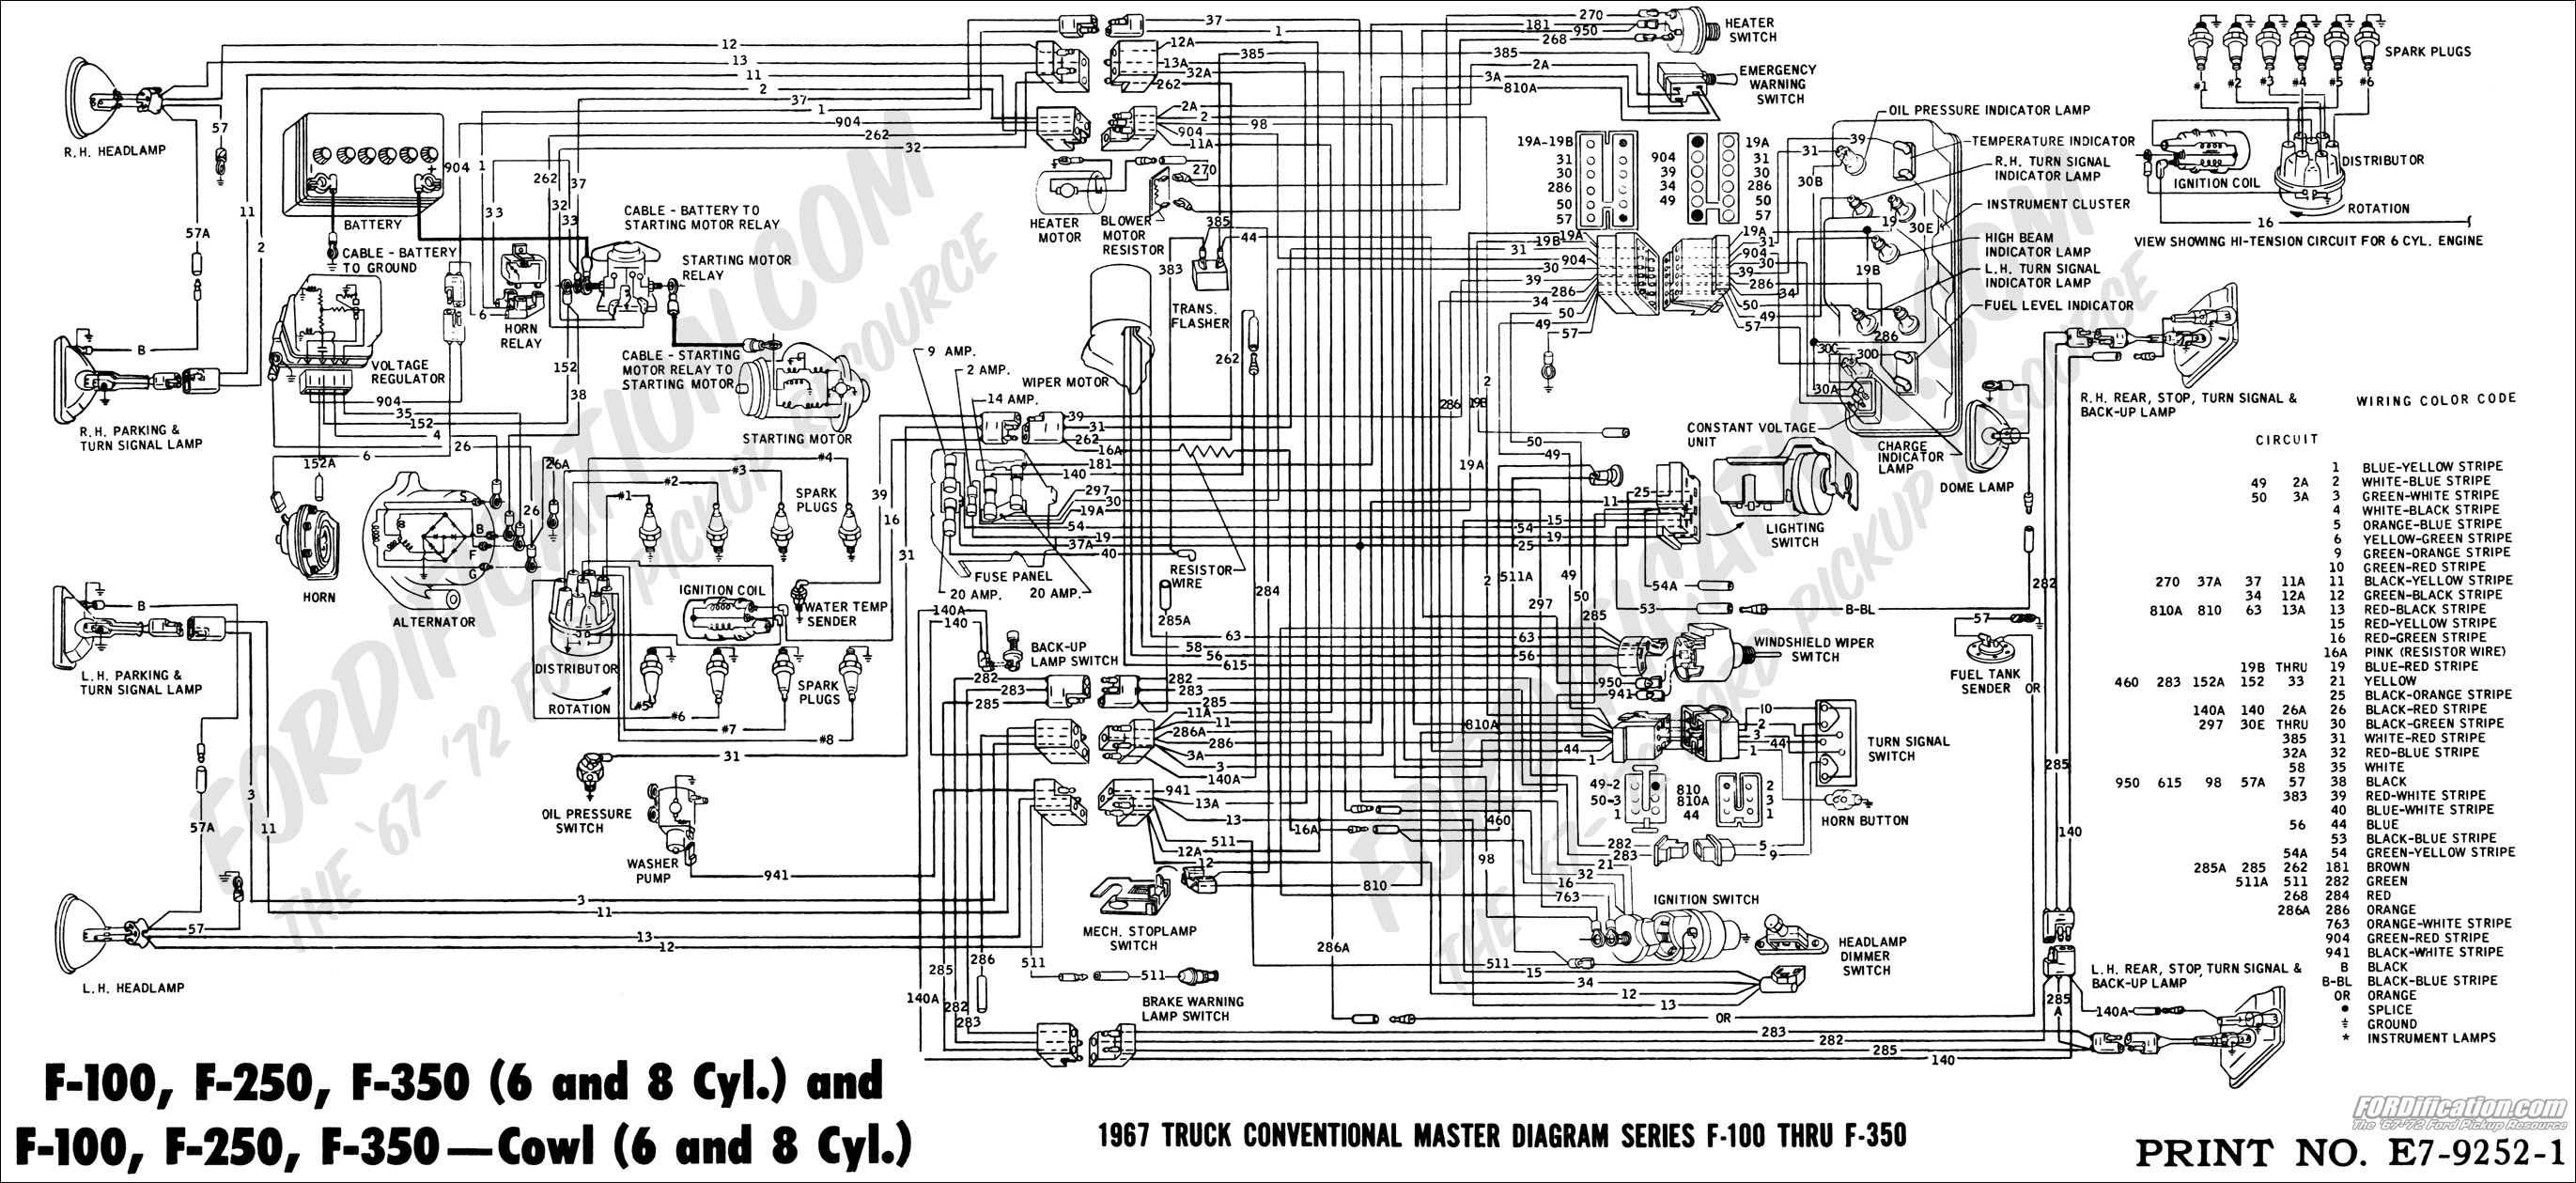 1975 ford wiring diagram wiring diagram online 1987 ford pickup wiring diagram 1988 ford truck wiring diagrams wiring diagram data ford electrical wiring diagrams 1975 ford wiring diagram